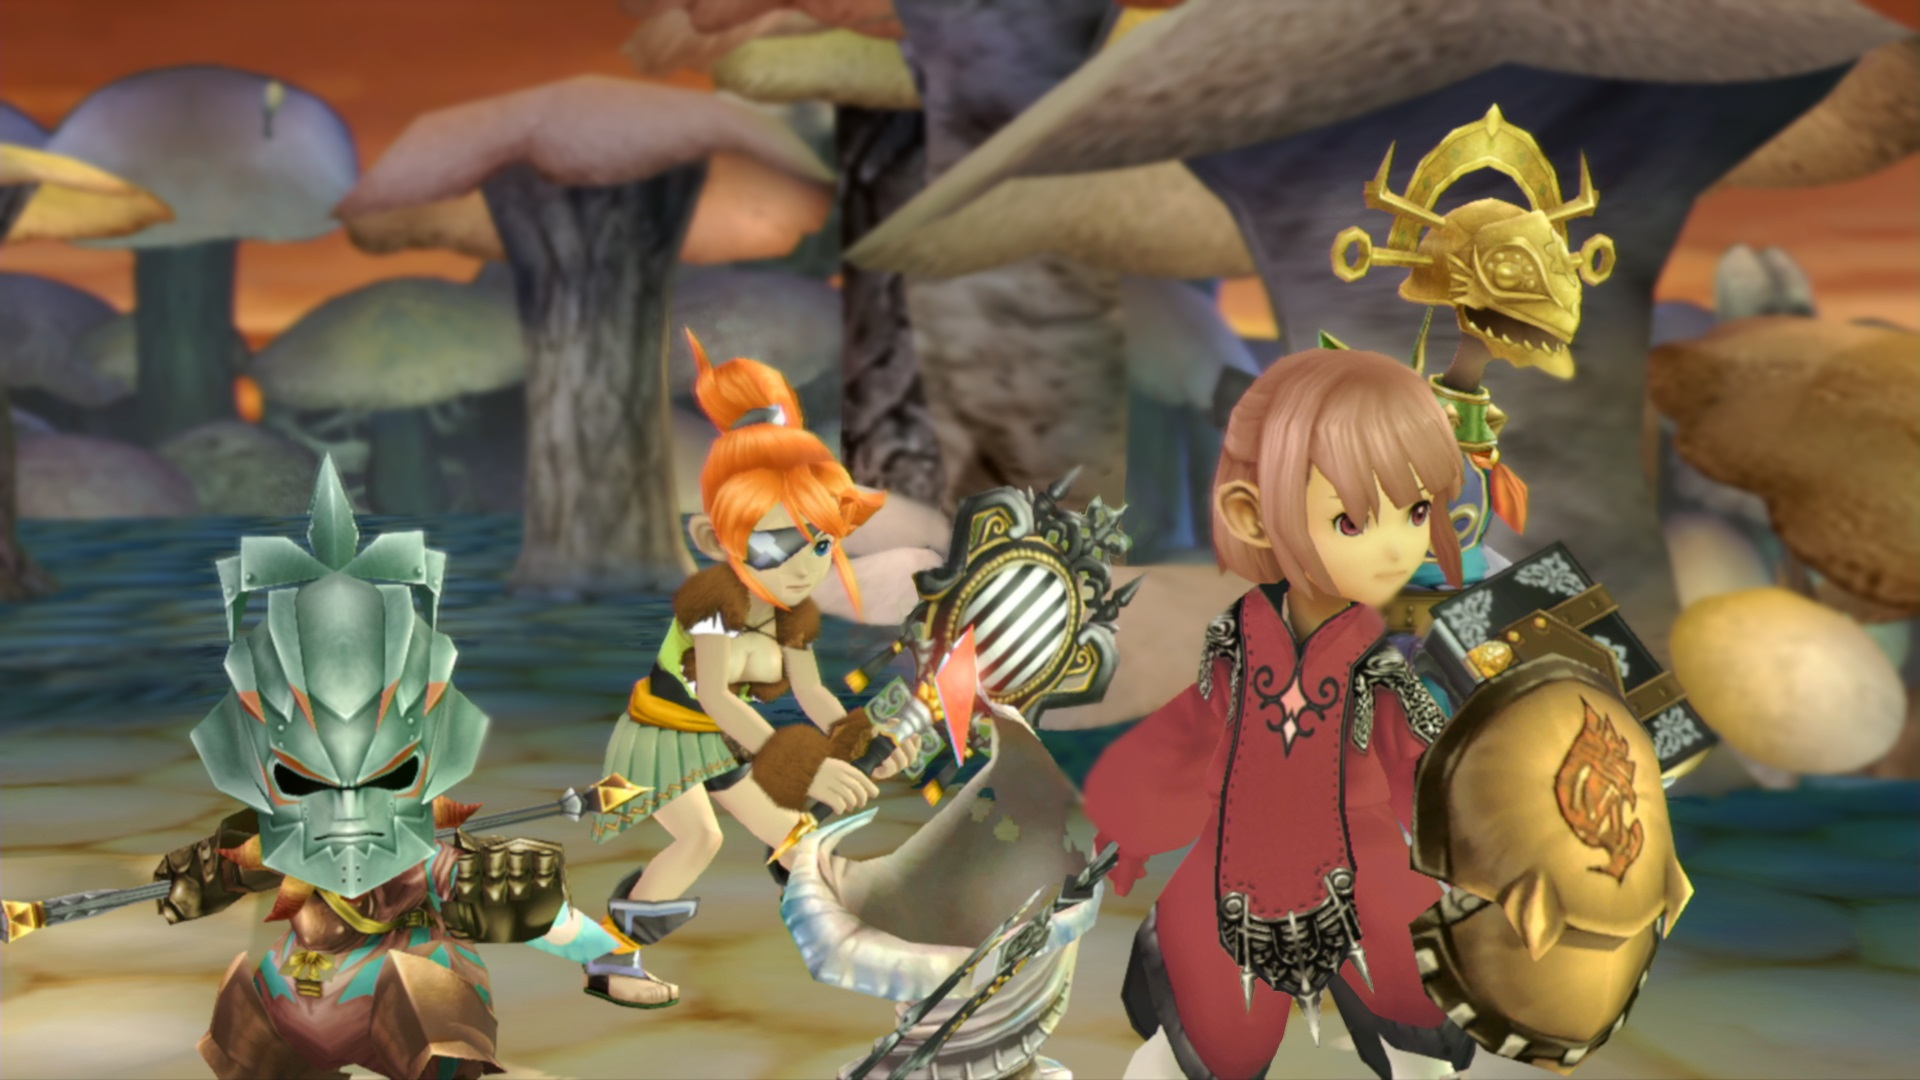 Final Fantasy Crystal Chronicles Remastered sufre un retraso hasta verano de 2020